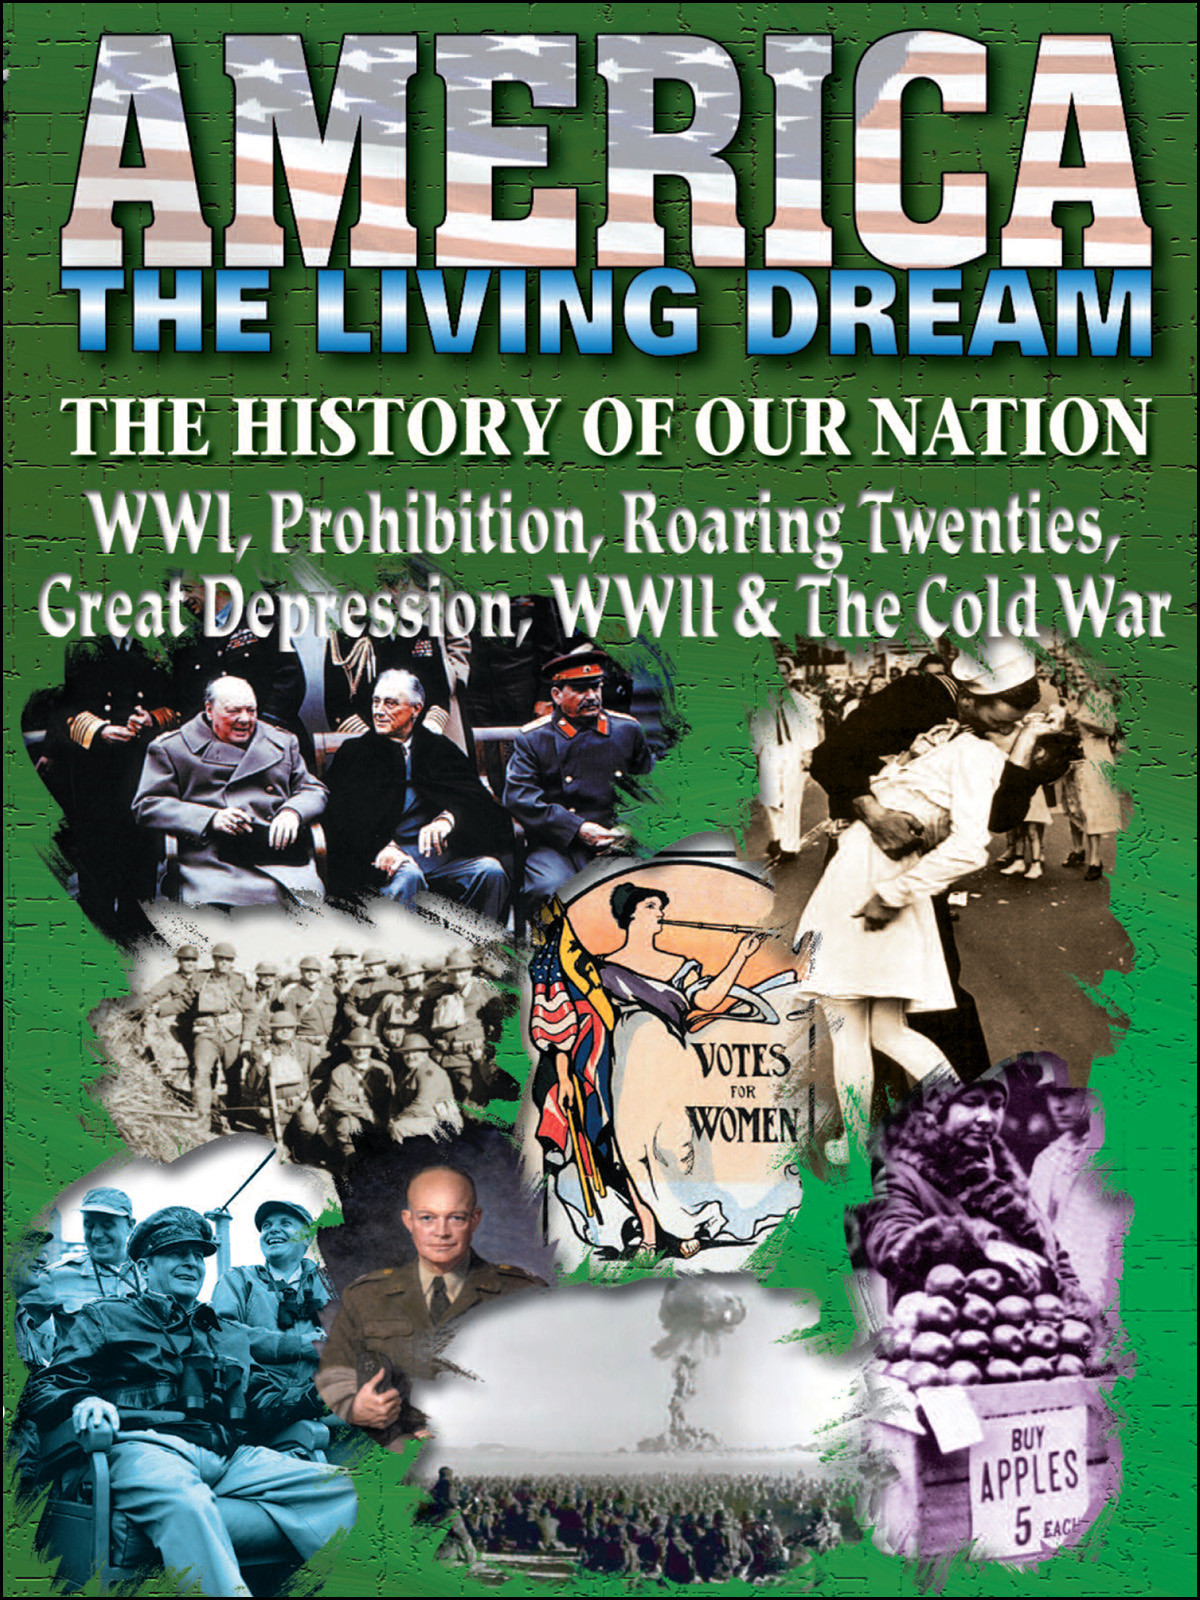 L2534 - WWI, Prohibition, Roaring Twenties, Great Depression, WWII & The Cold War